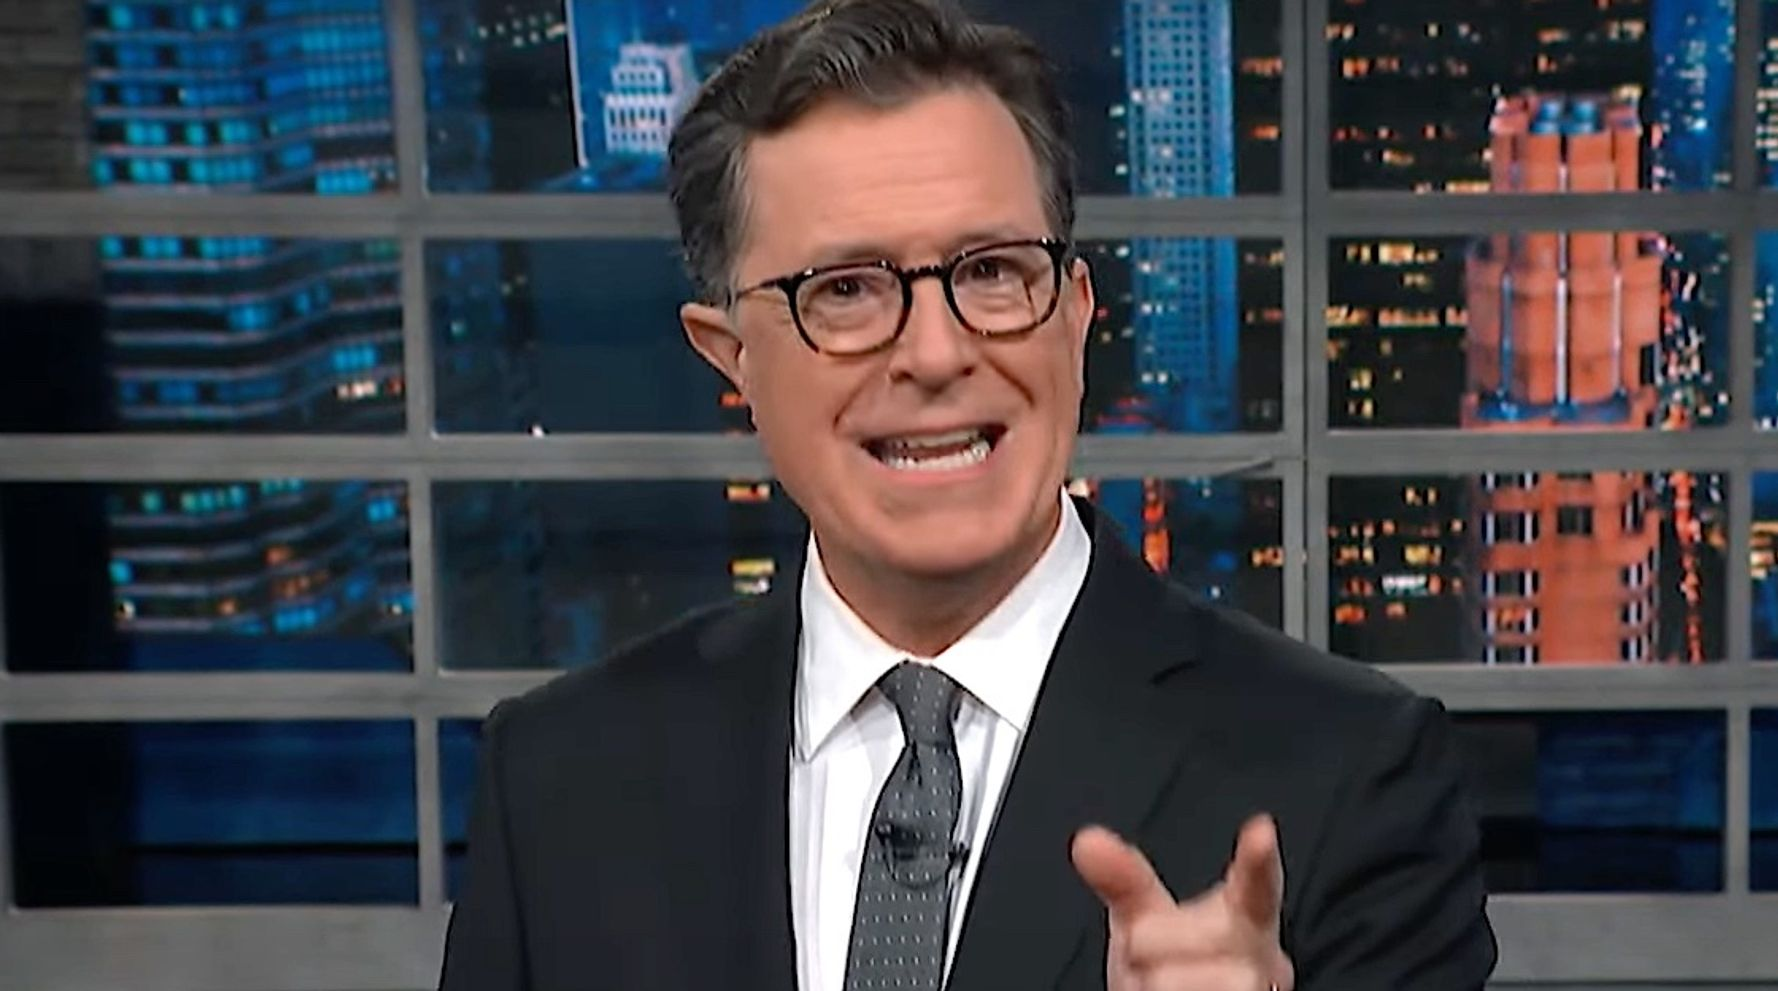 Stephen Colbert Offers Up Some Blunt Prison Advice For Jan. 6 Riot Suspects